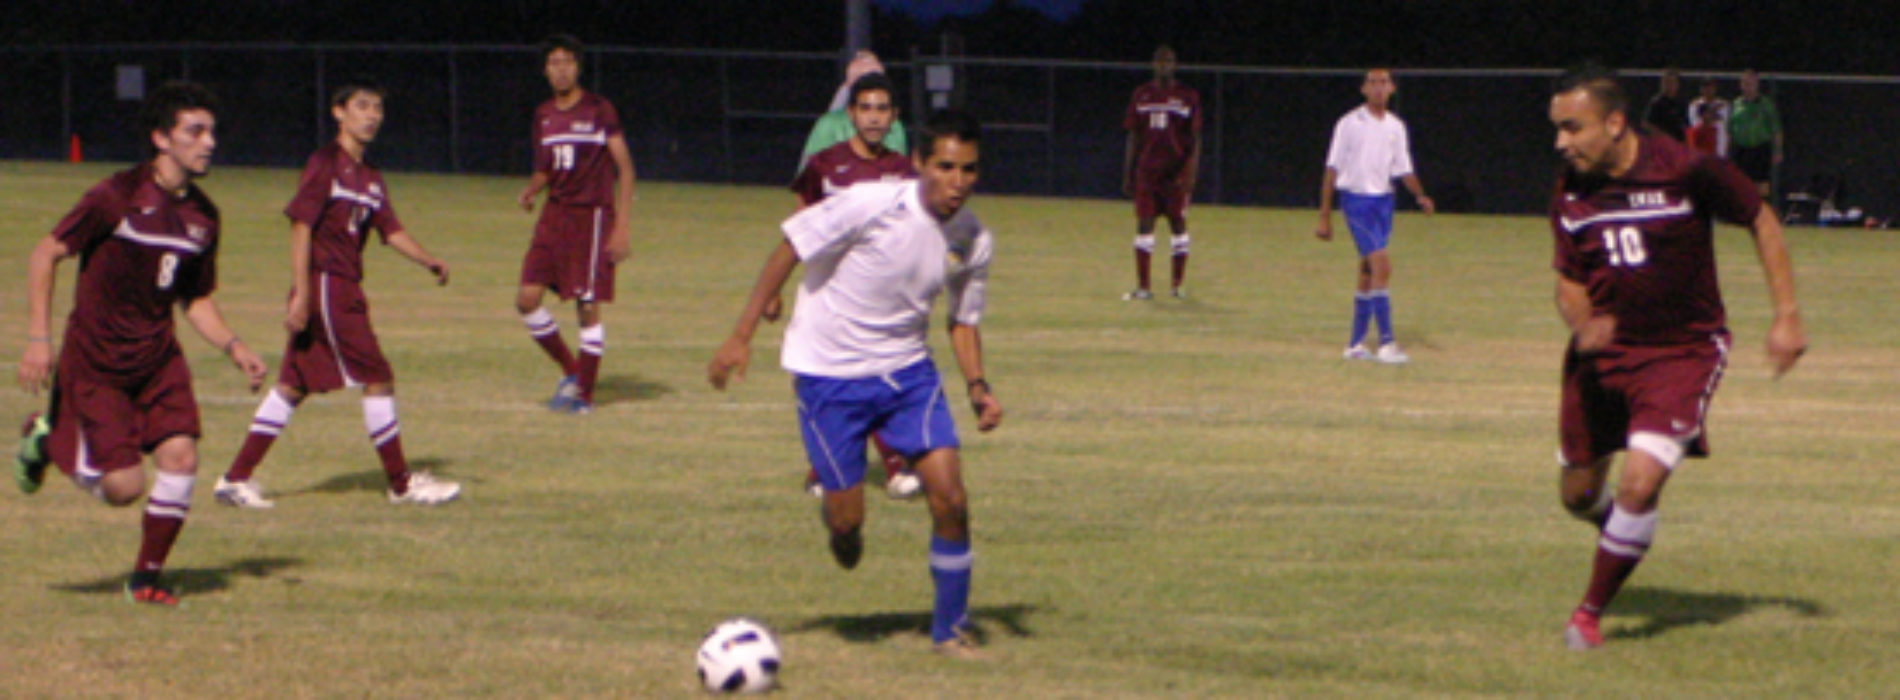 Southwestern Hosts CTA for Second Annual Soccer Fellowship